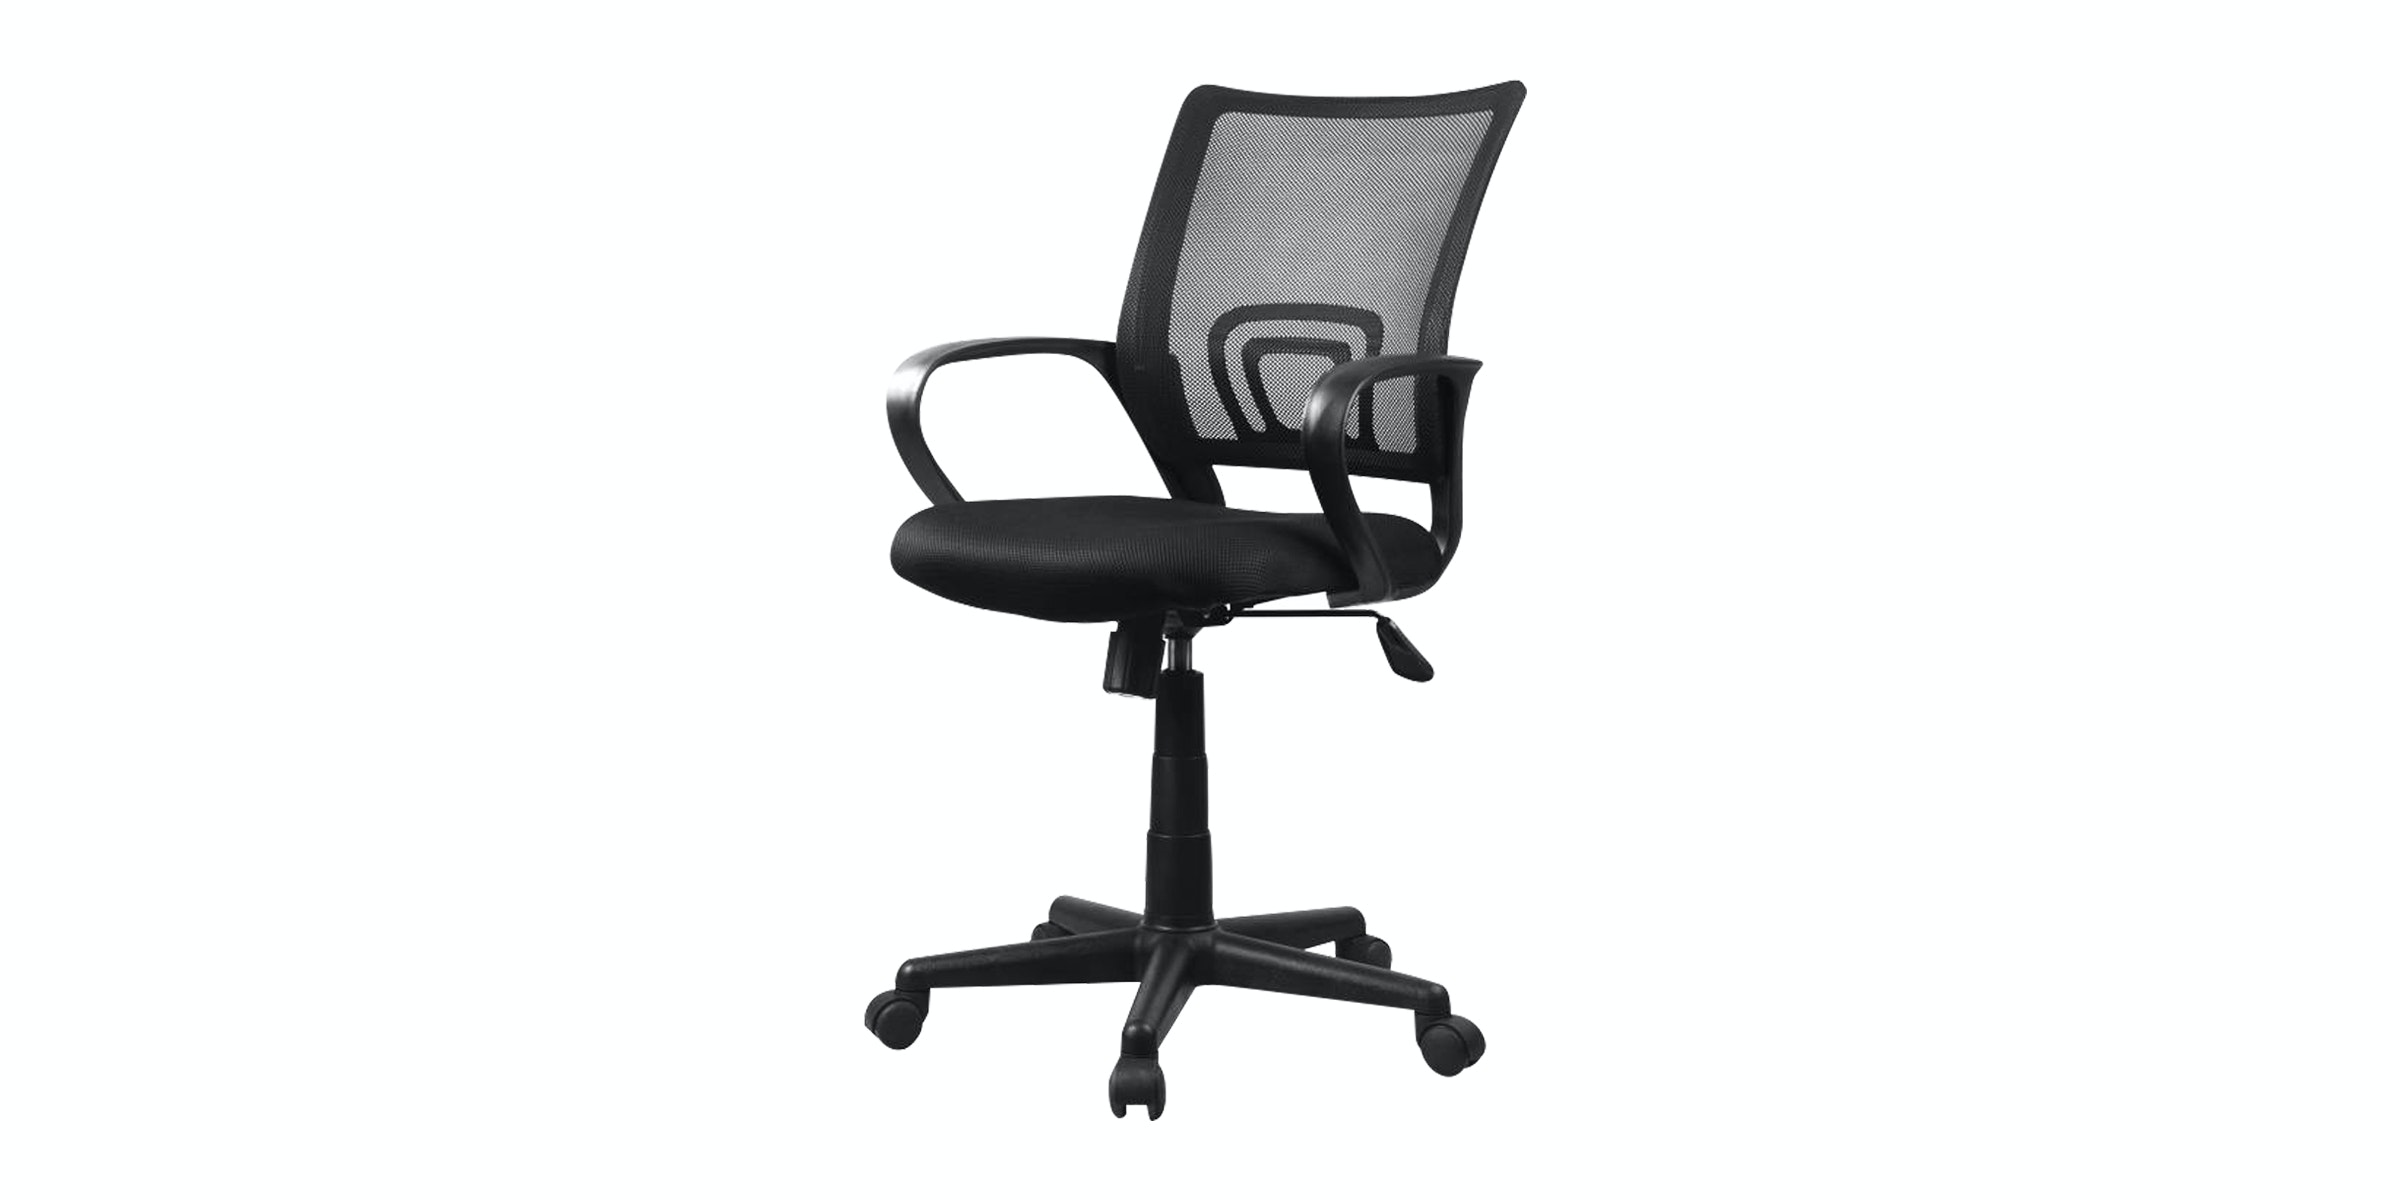 office chair material. JYSK Office Chair Spjald Fabric Black Material